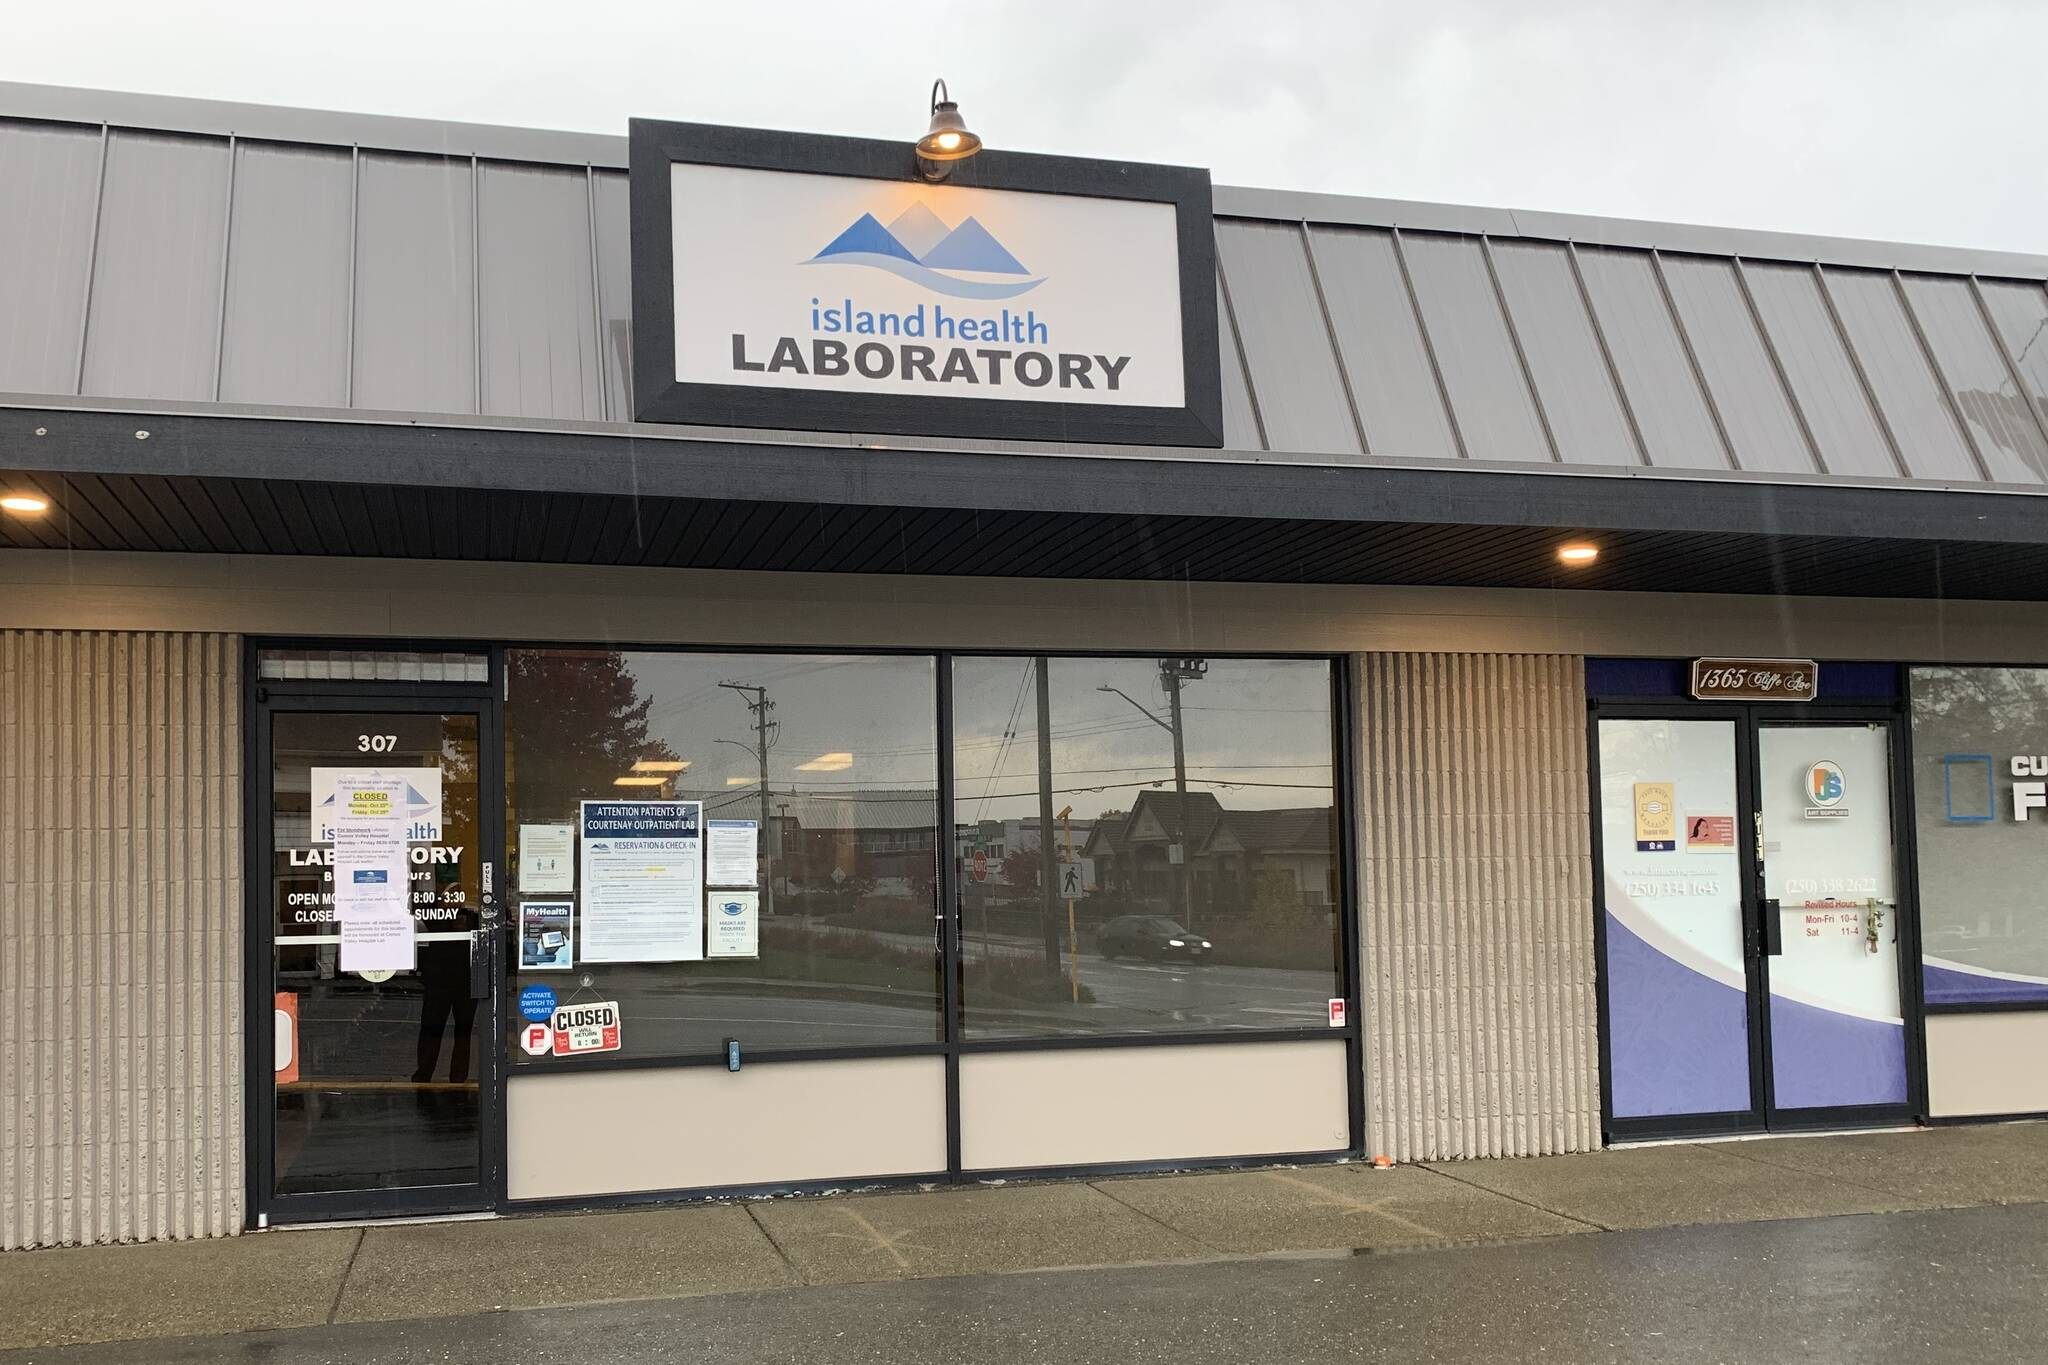 Citing staffing issues, Island Health has closed the outpatient lab at 307A 14 St., Courtenay. Photo by Terry Farrell